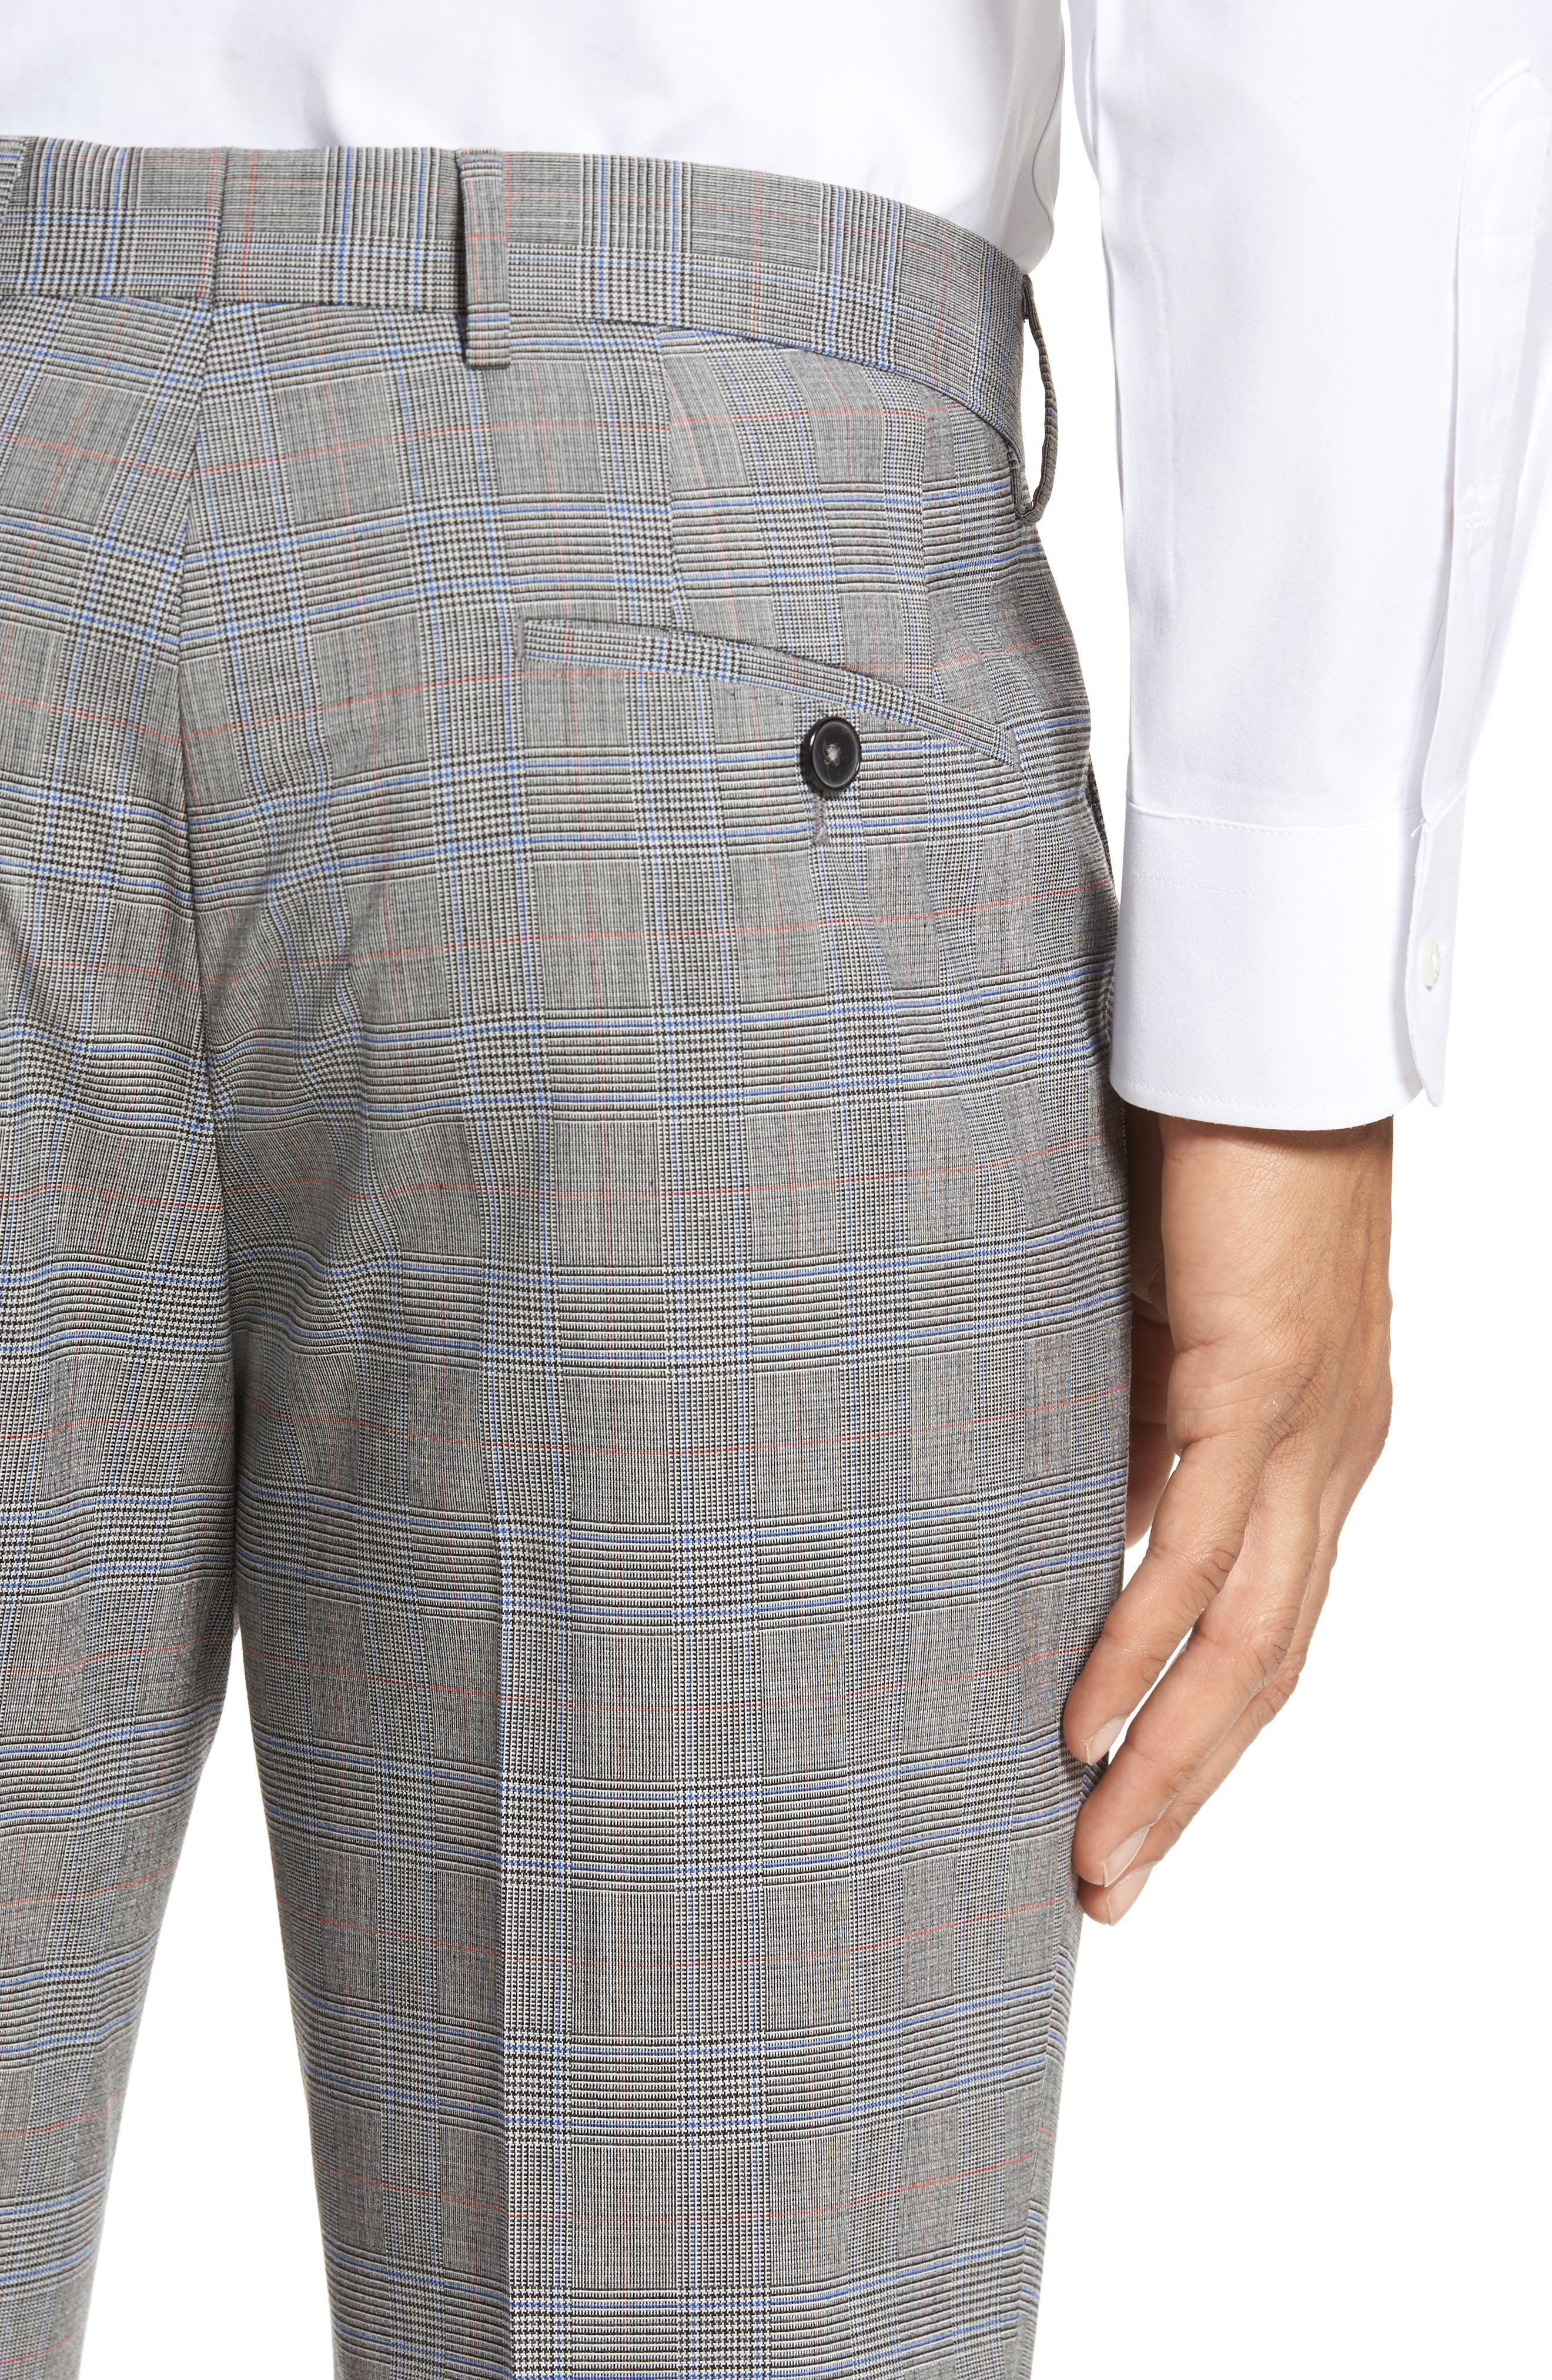 Benso Flat Front Plaid Wool Blend Trousers,                             Alternate thumbnail 4, color,                             Open Grey